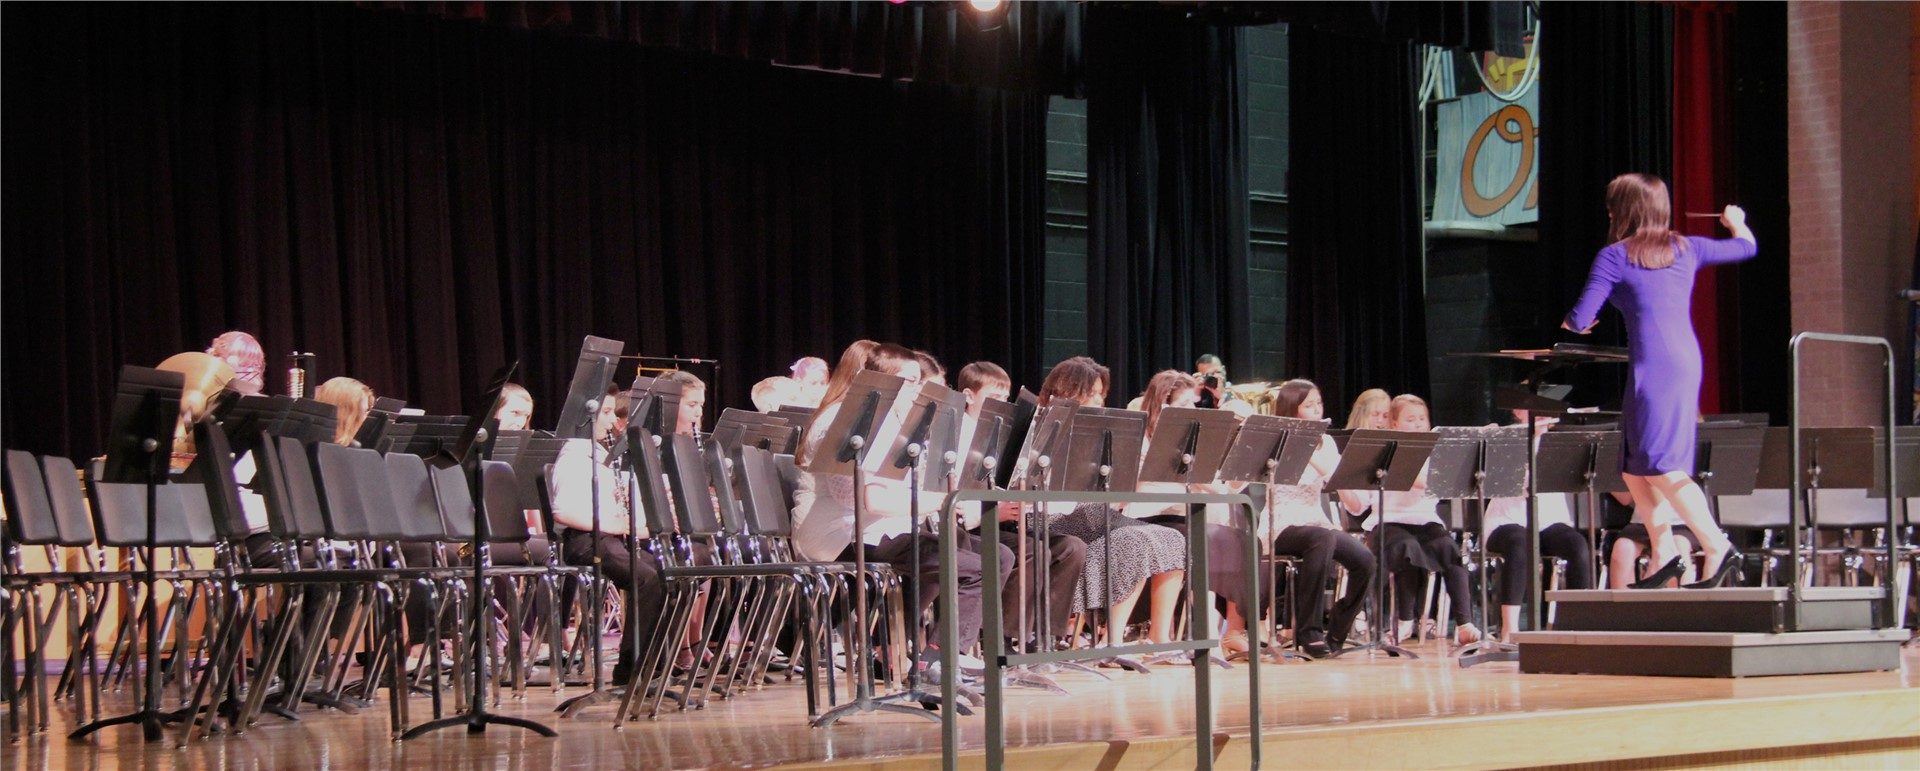 students playing instruments while teacher conducts band